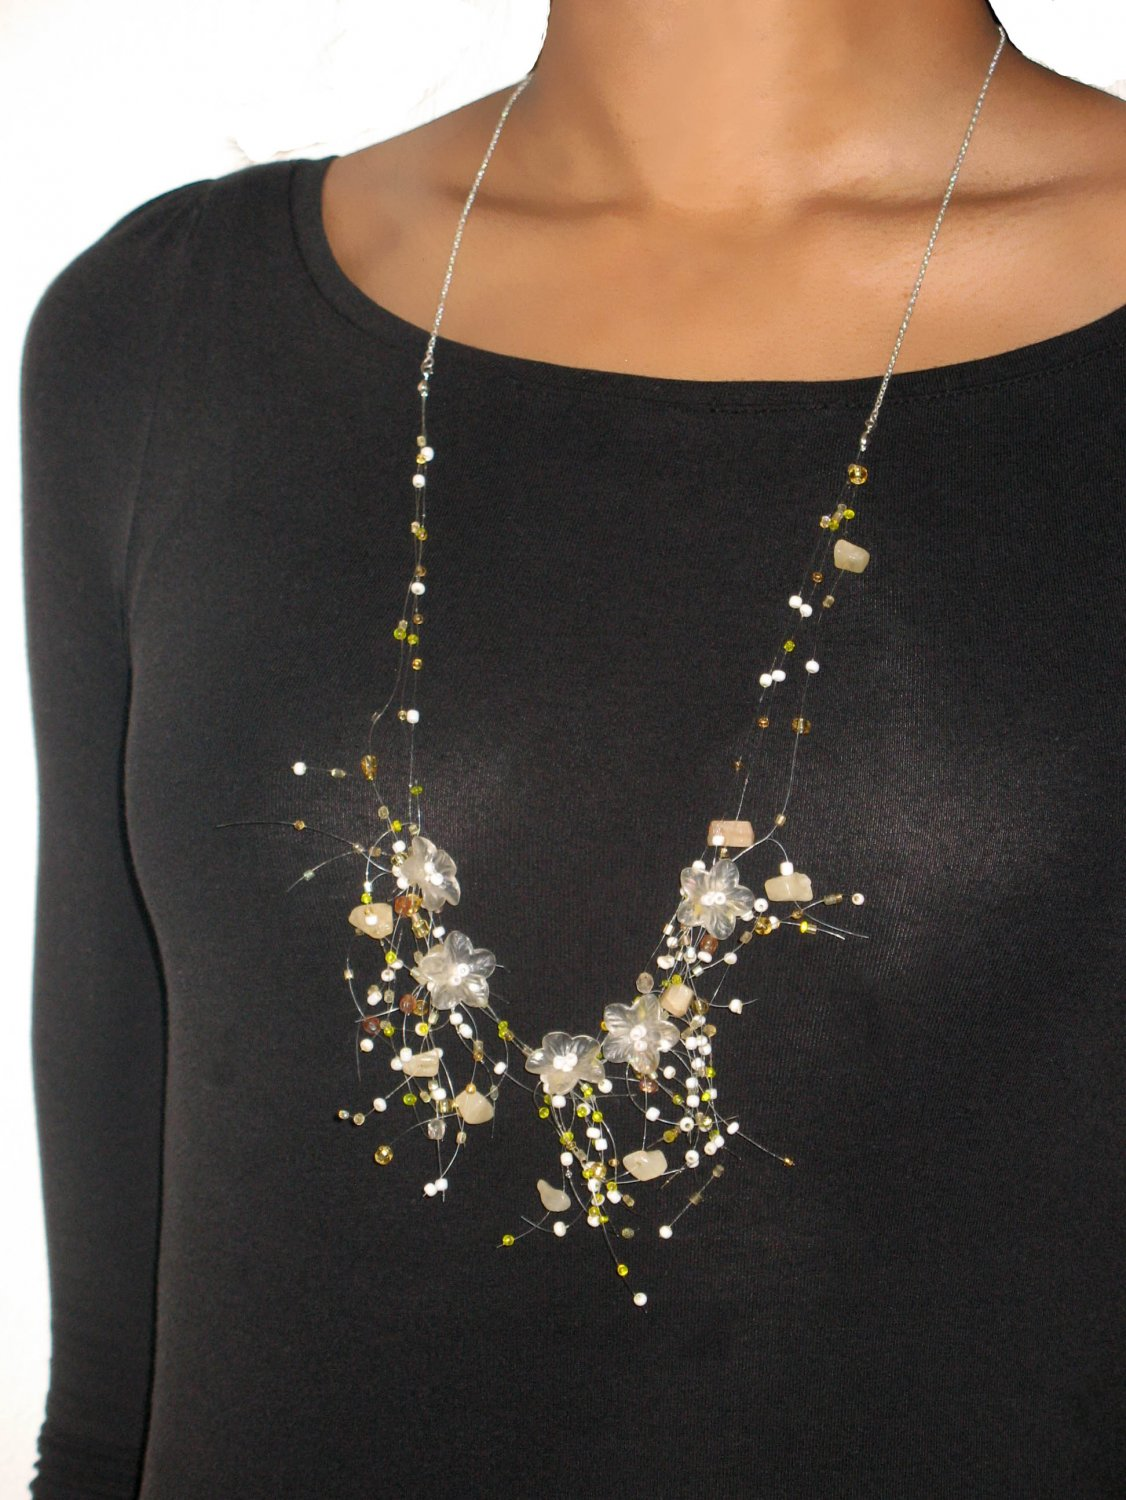 Spring Fever: Yellow Flower Illusion Necklace